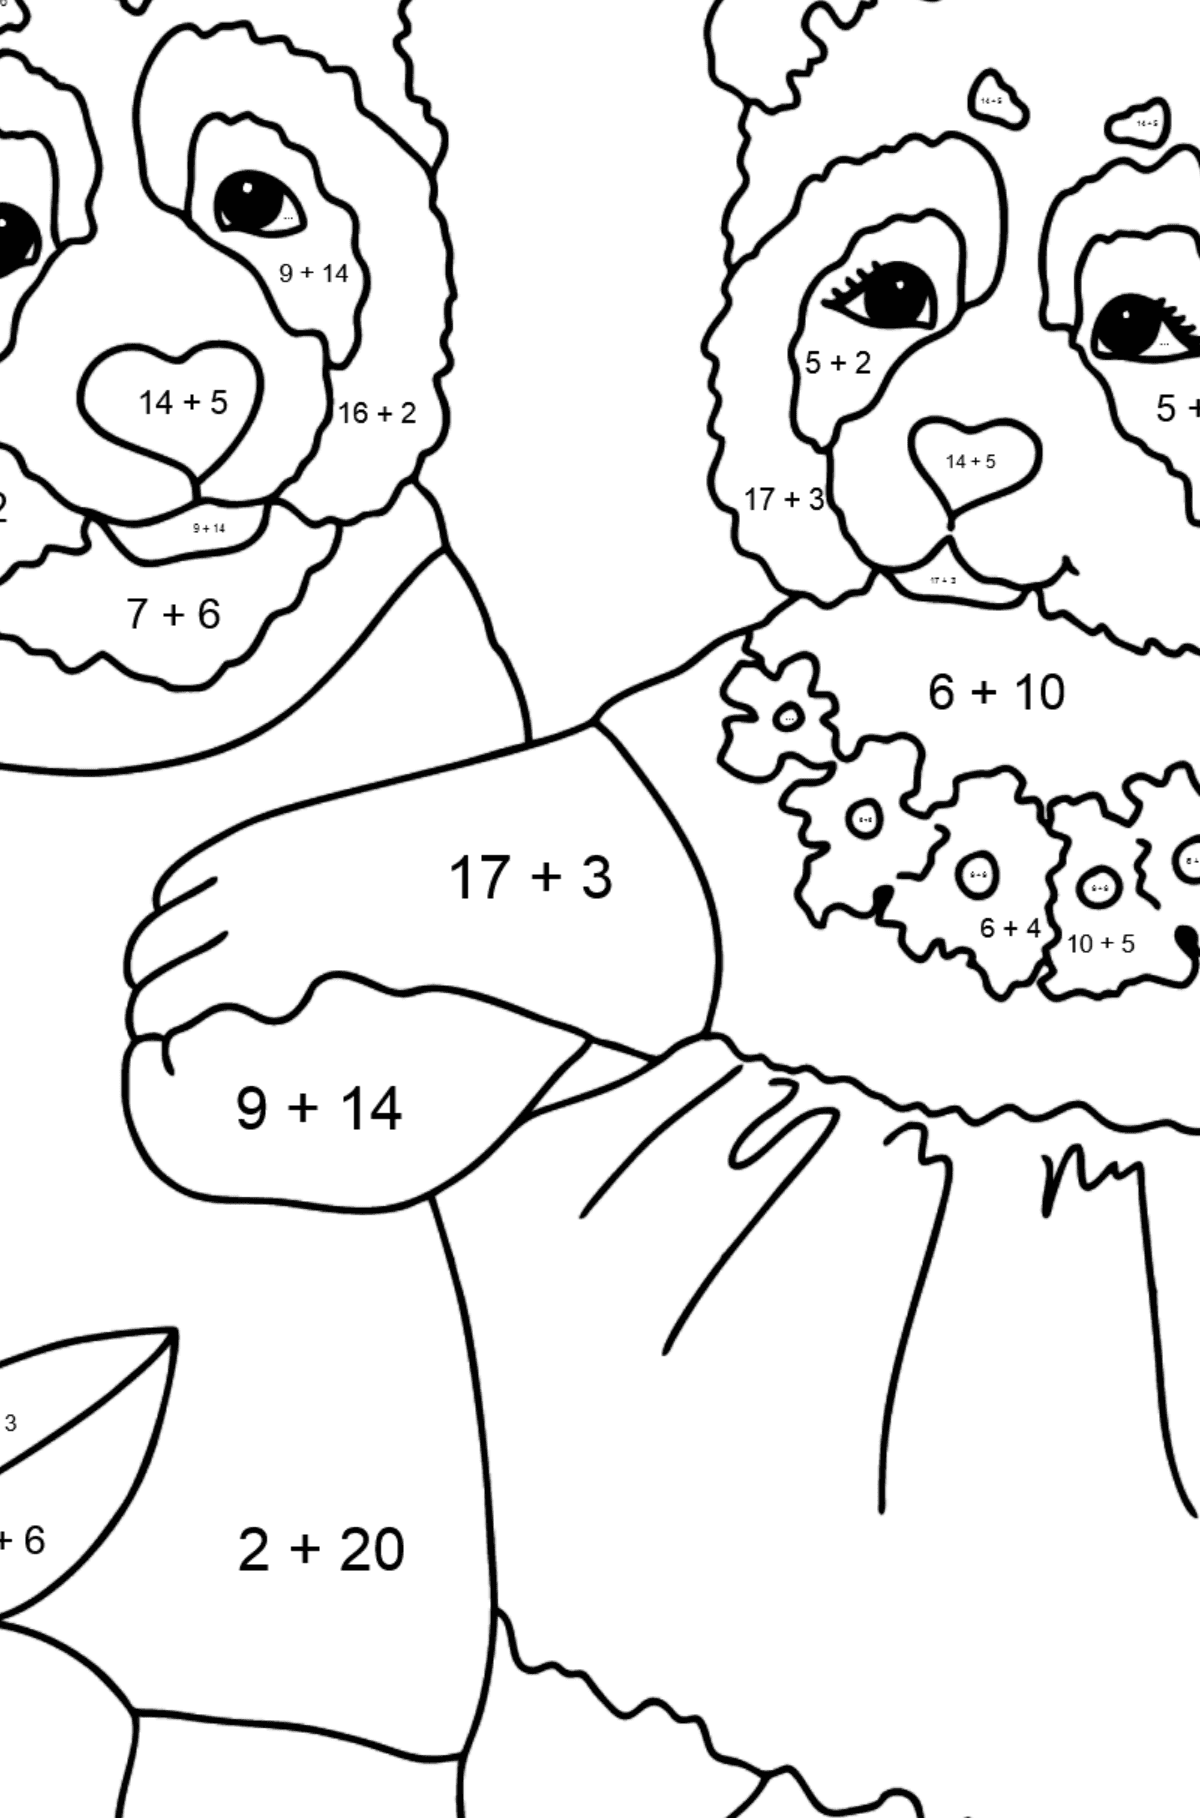 Coloring Page - Pandas are Having a Rest - Math Coloring - Addition for Kids